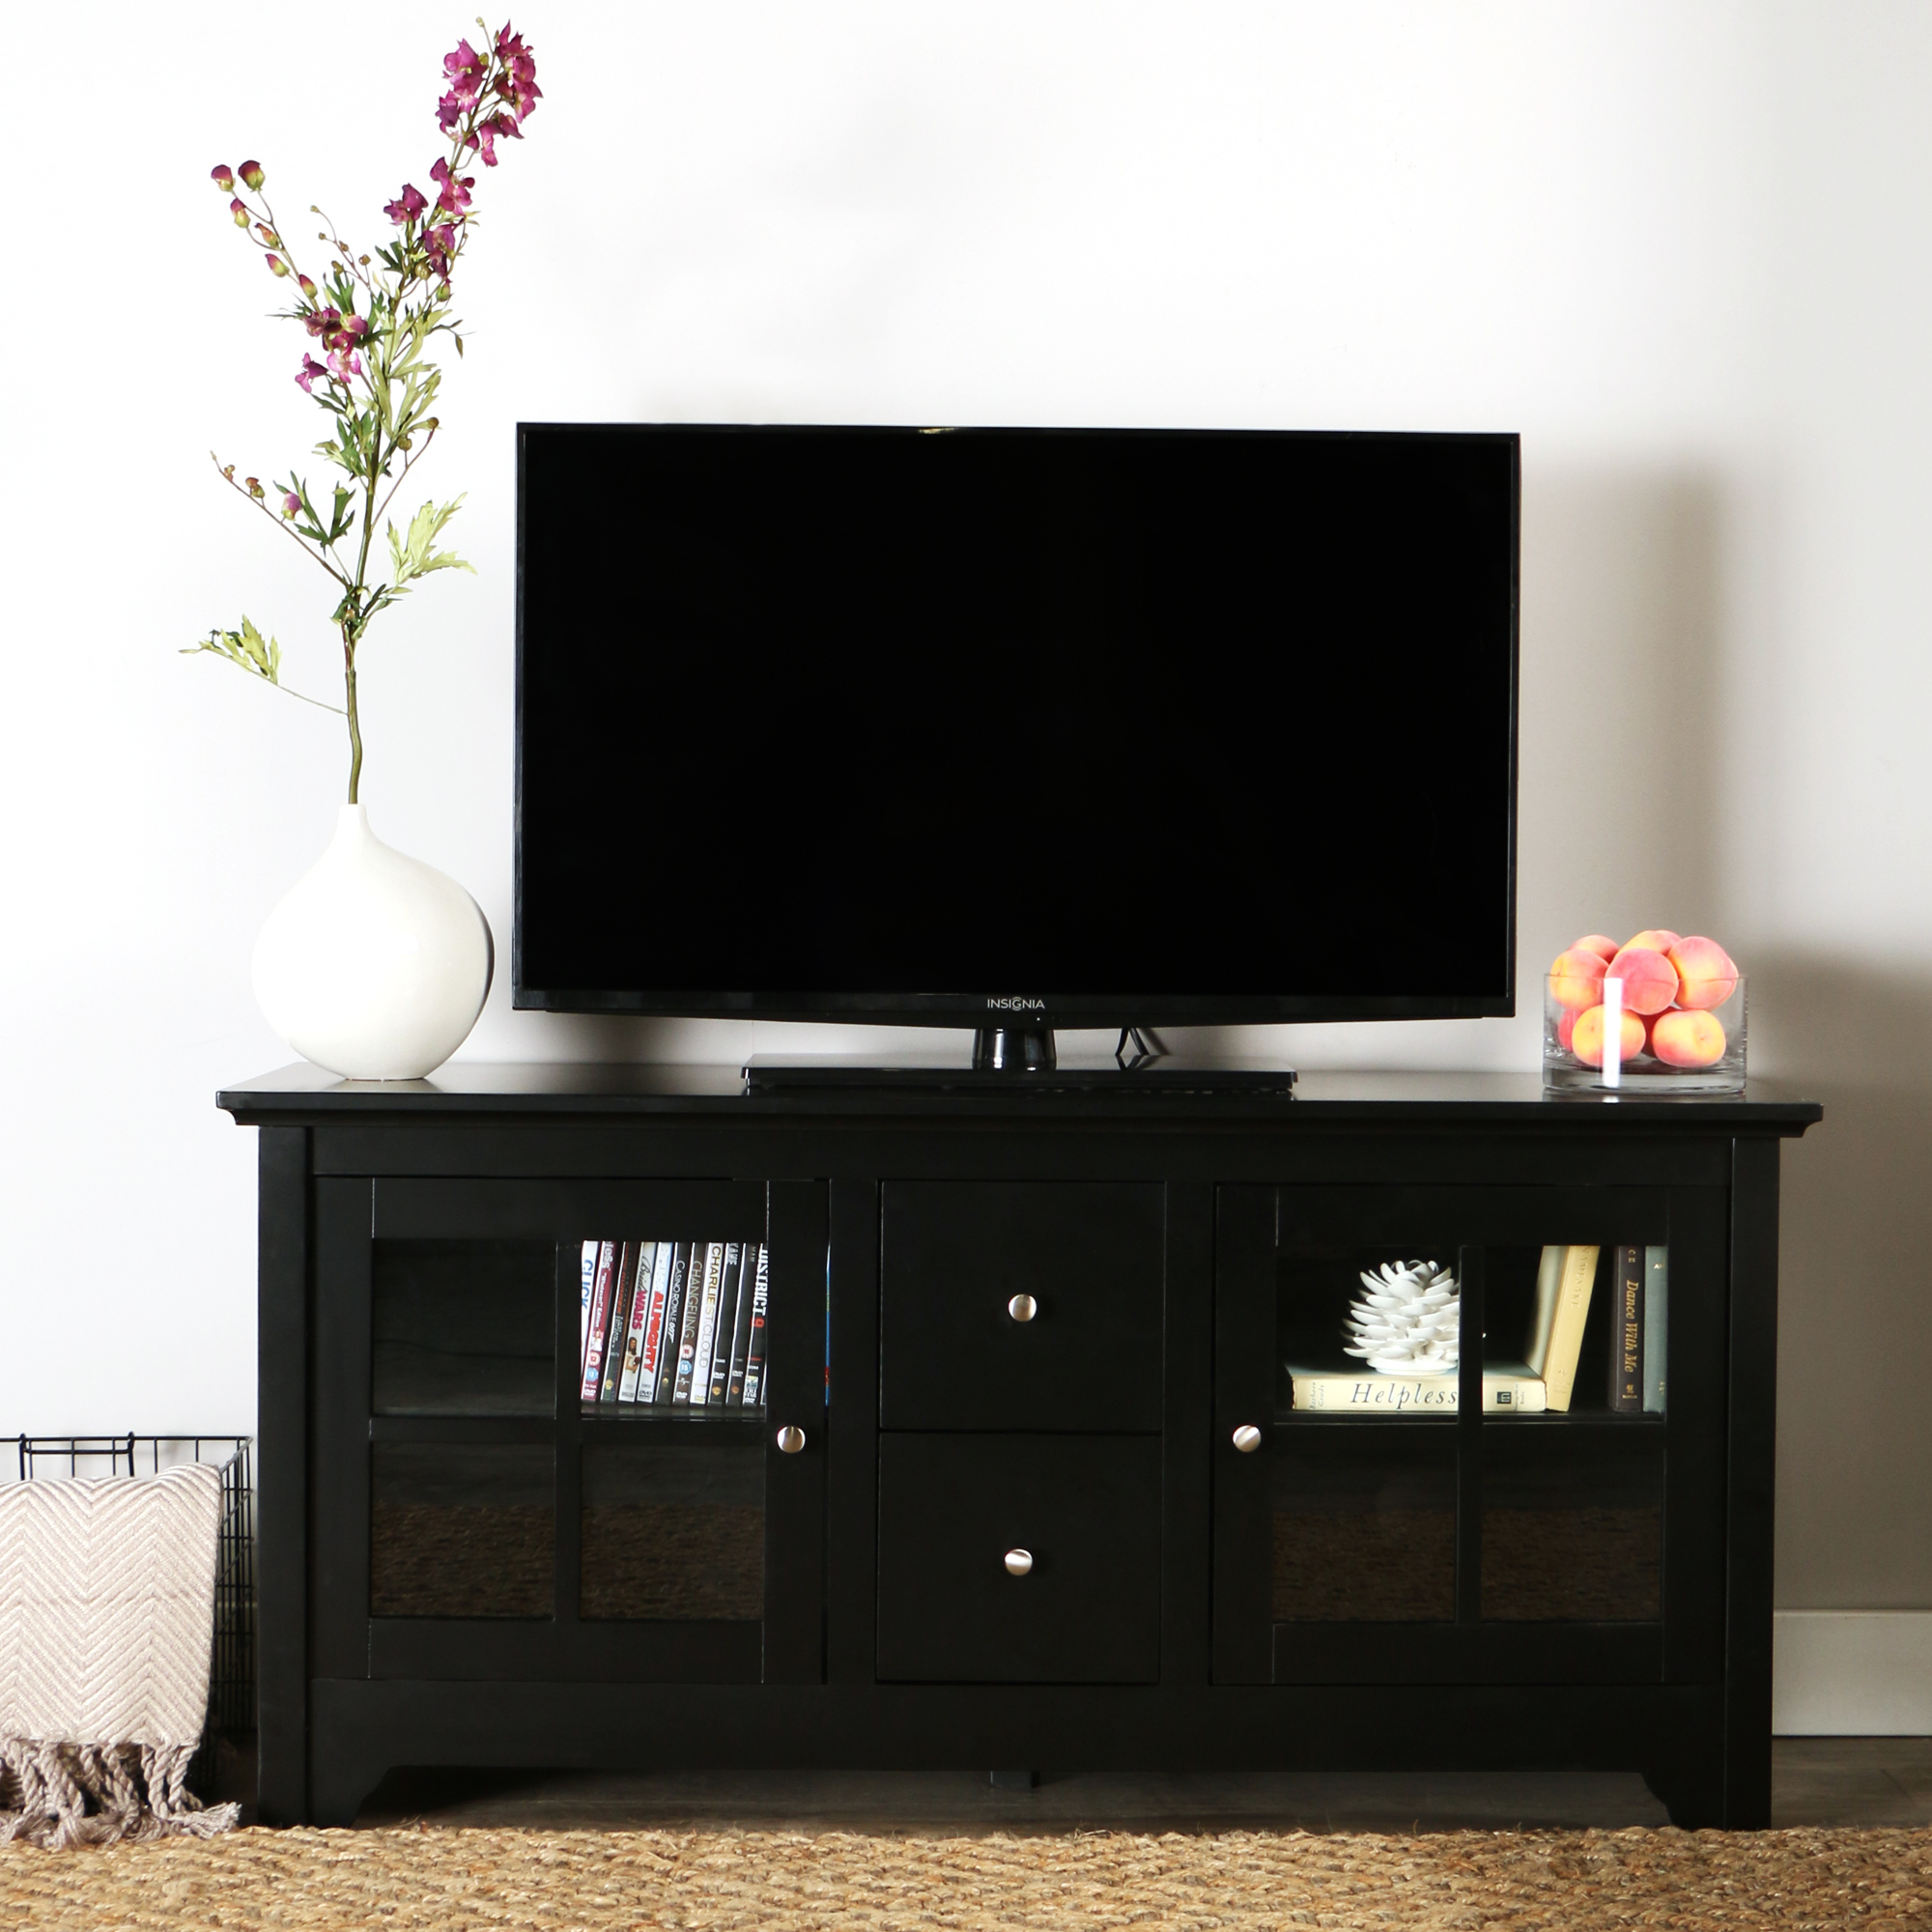 """52"""" Transitional Wood Glass Media TV Stand Storage Console Entertainment Center for TVs up to 55"""" - Black"""